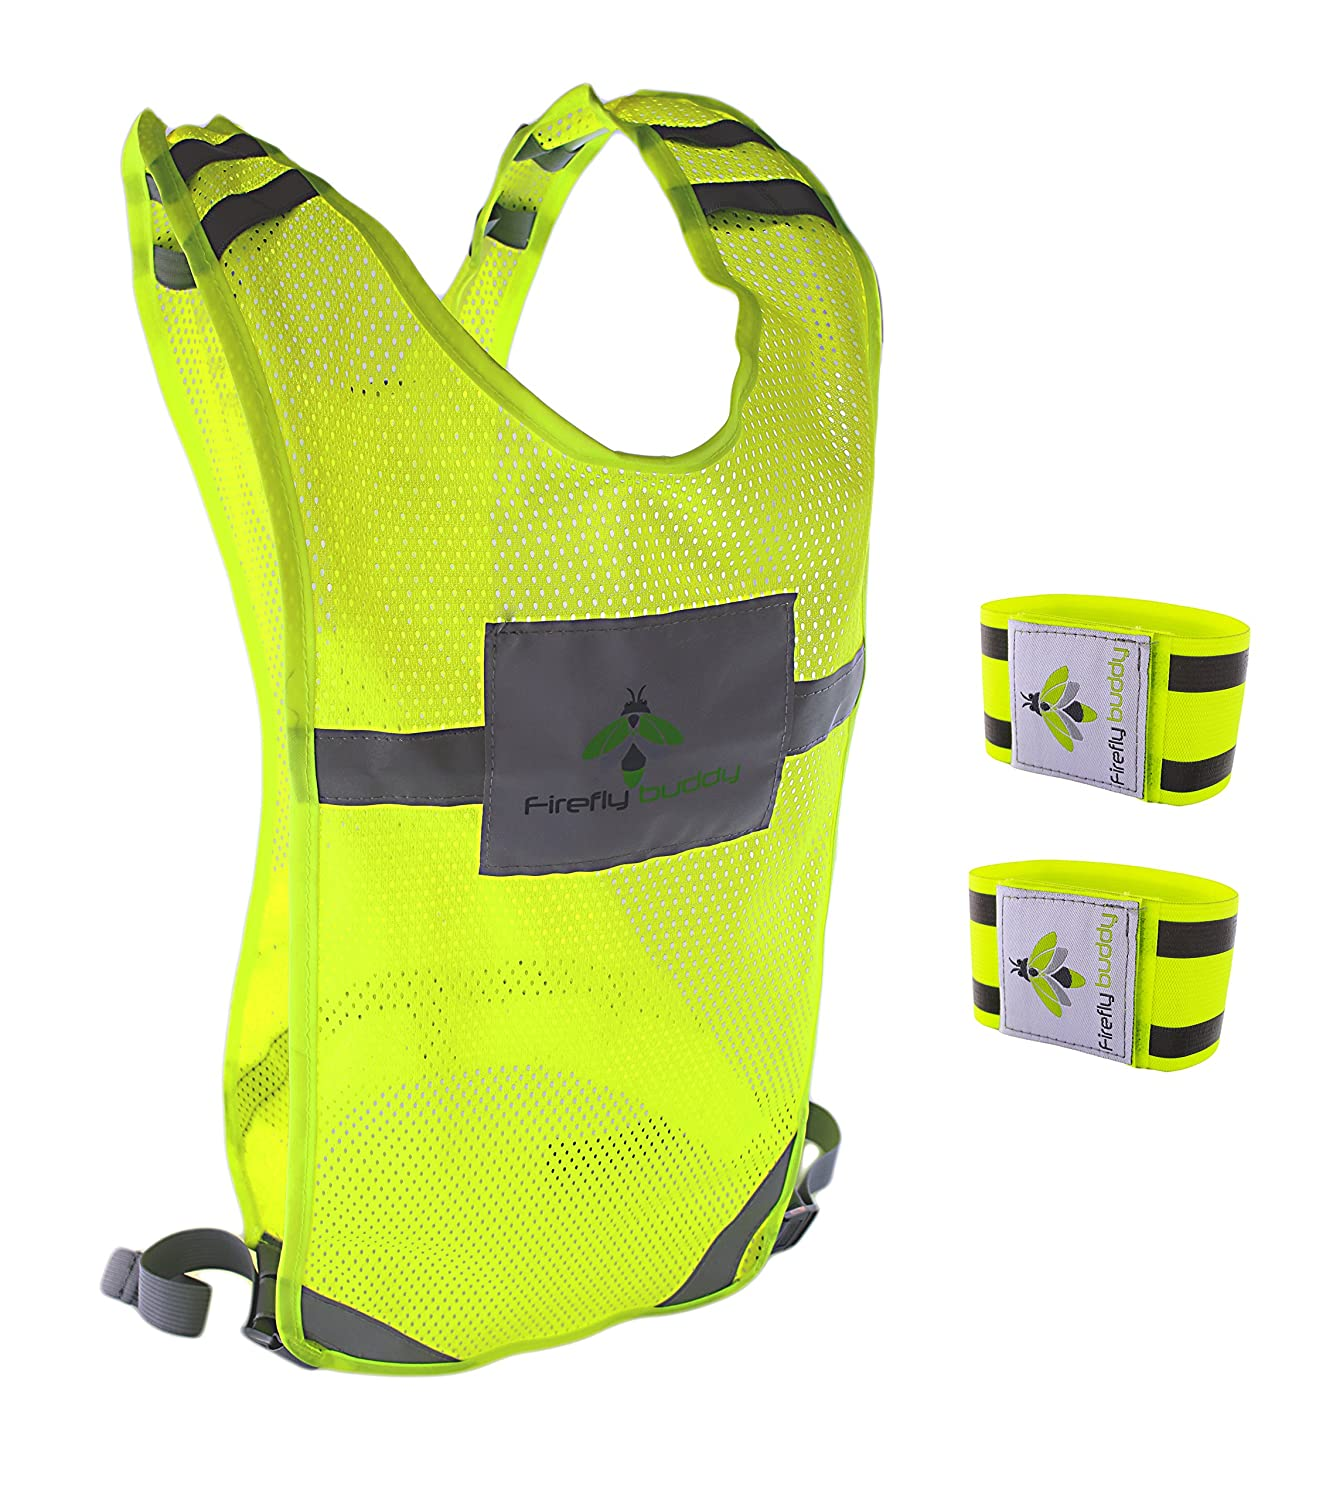 Biking Best Safety Gear for Men /& Women Outdoor Activities Cycling Firefly Buddy Great Reflective Vest for Running Walking with FREE Arm Bands